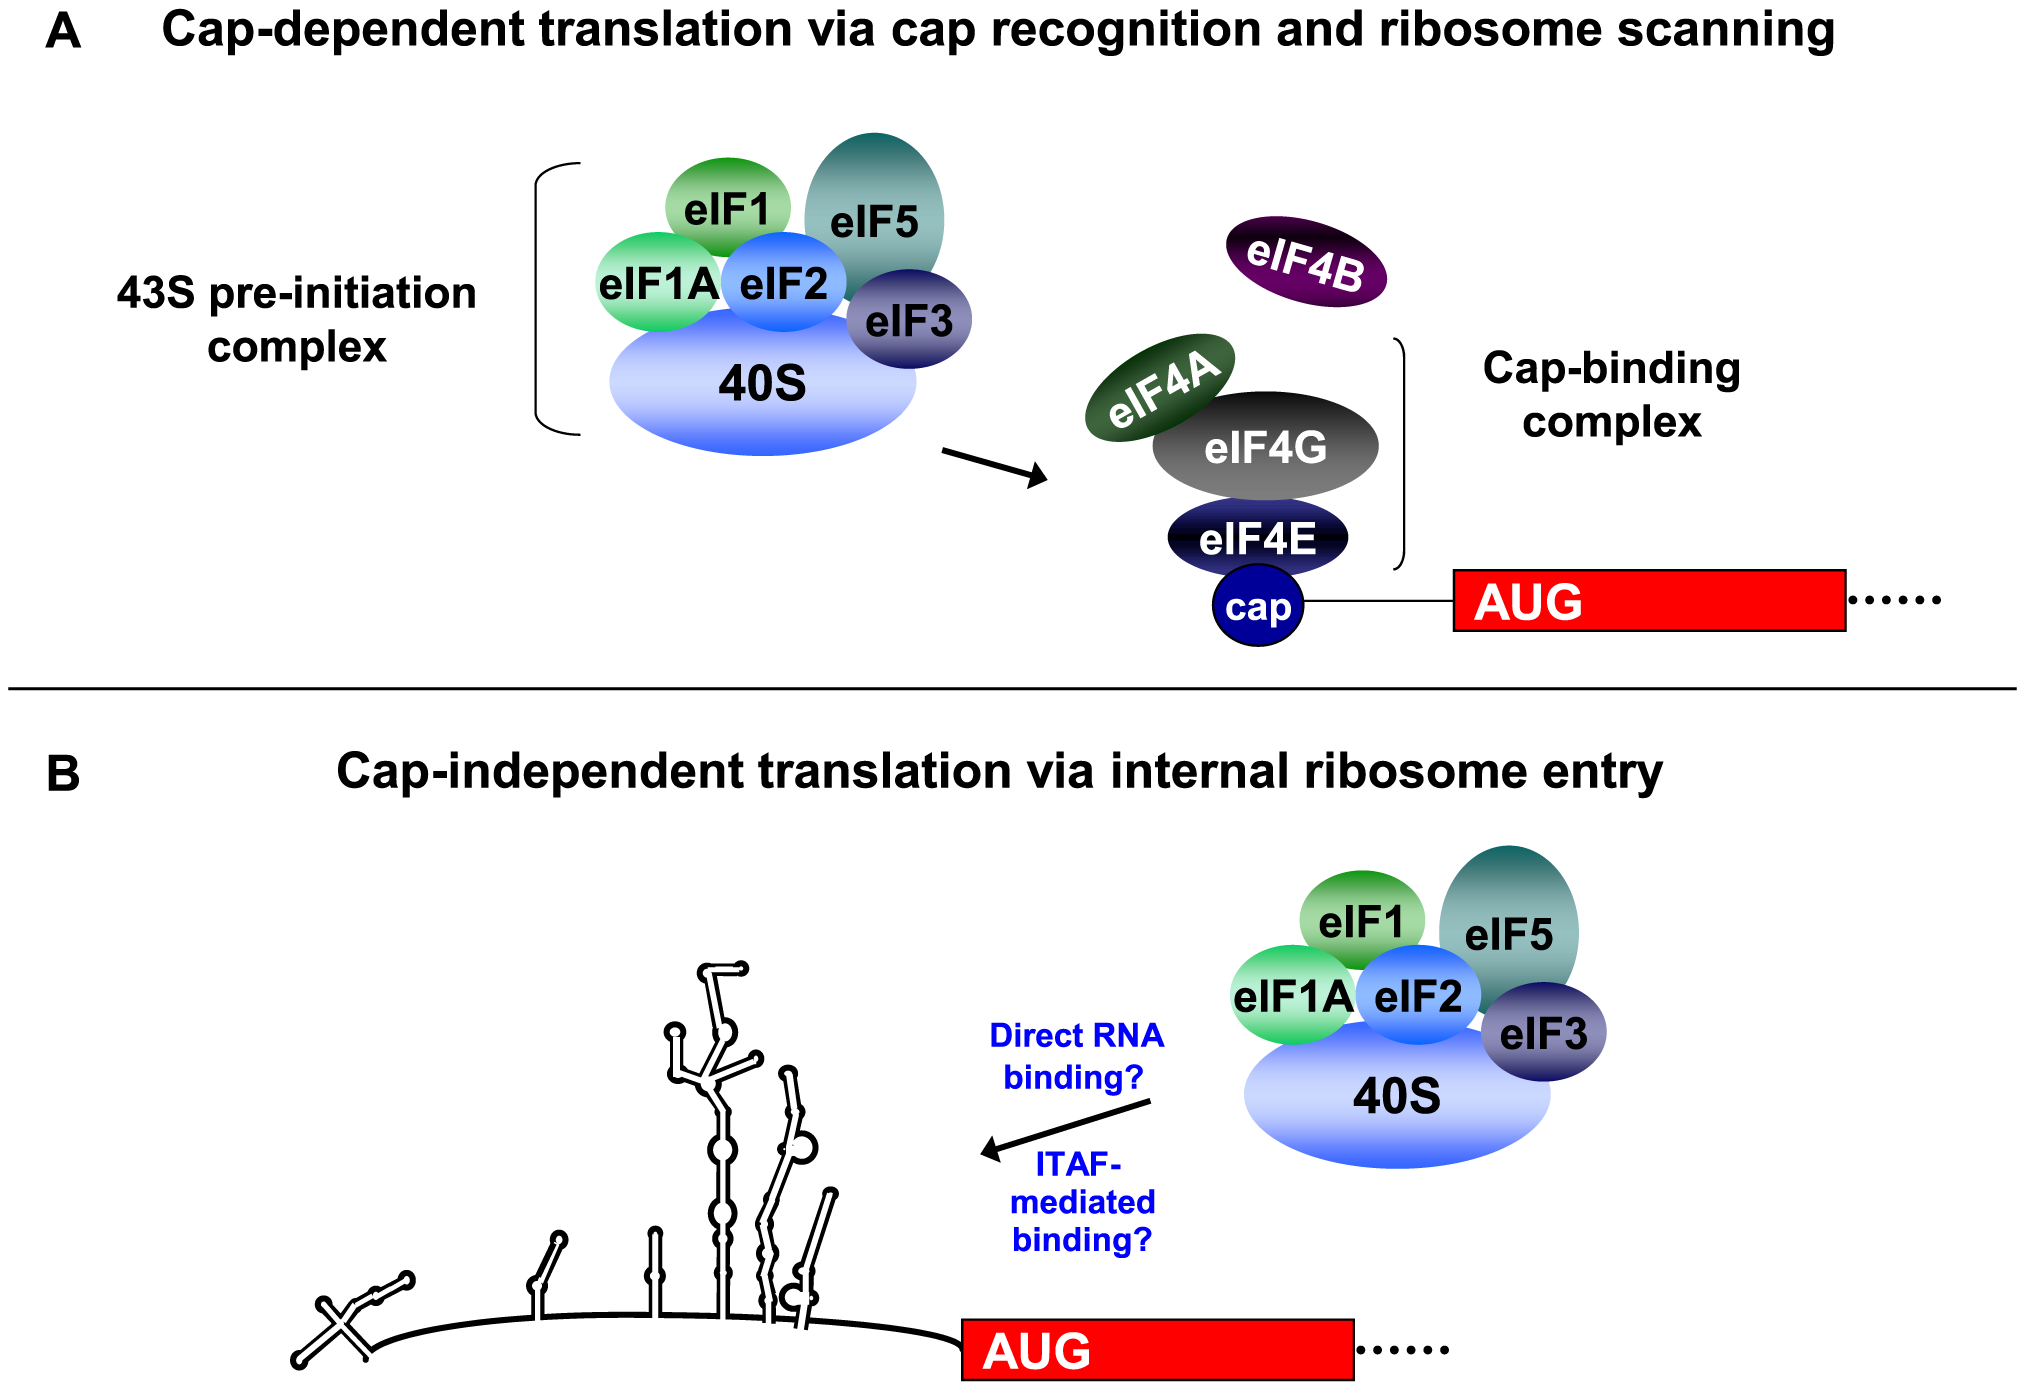 Recruitment of the 43S pre-initiation complex for cap-dependent and cap-independent translation initiation.